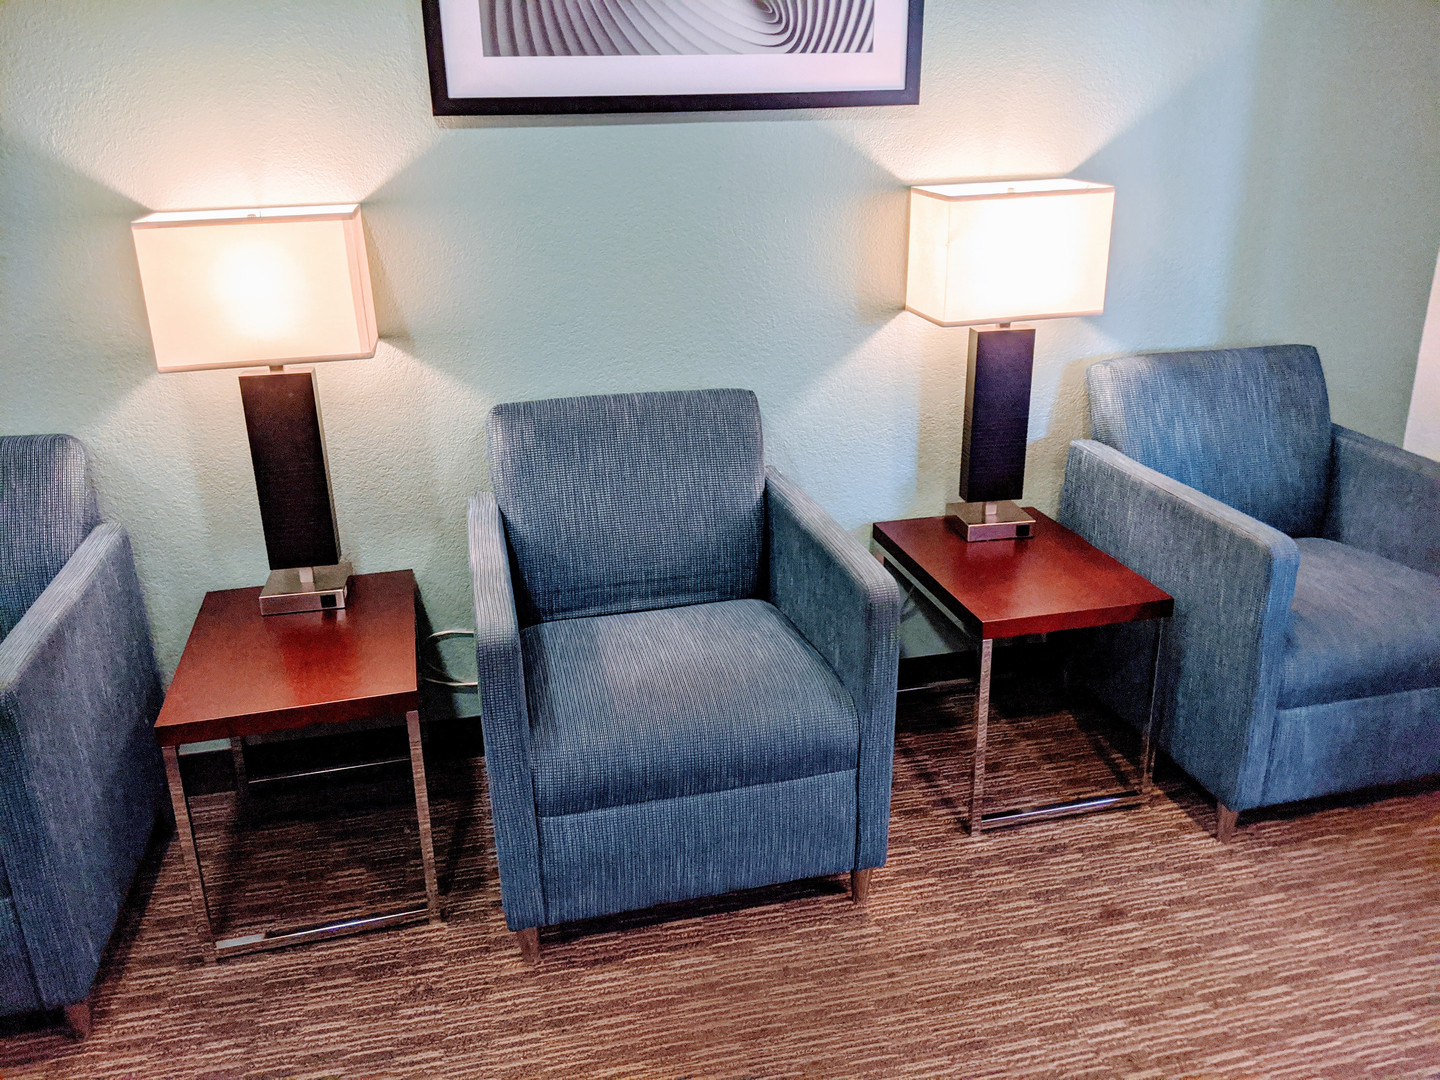 Comfortable Chairs in Waiting Room